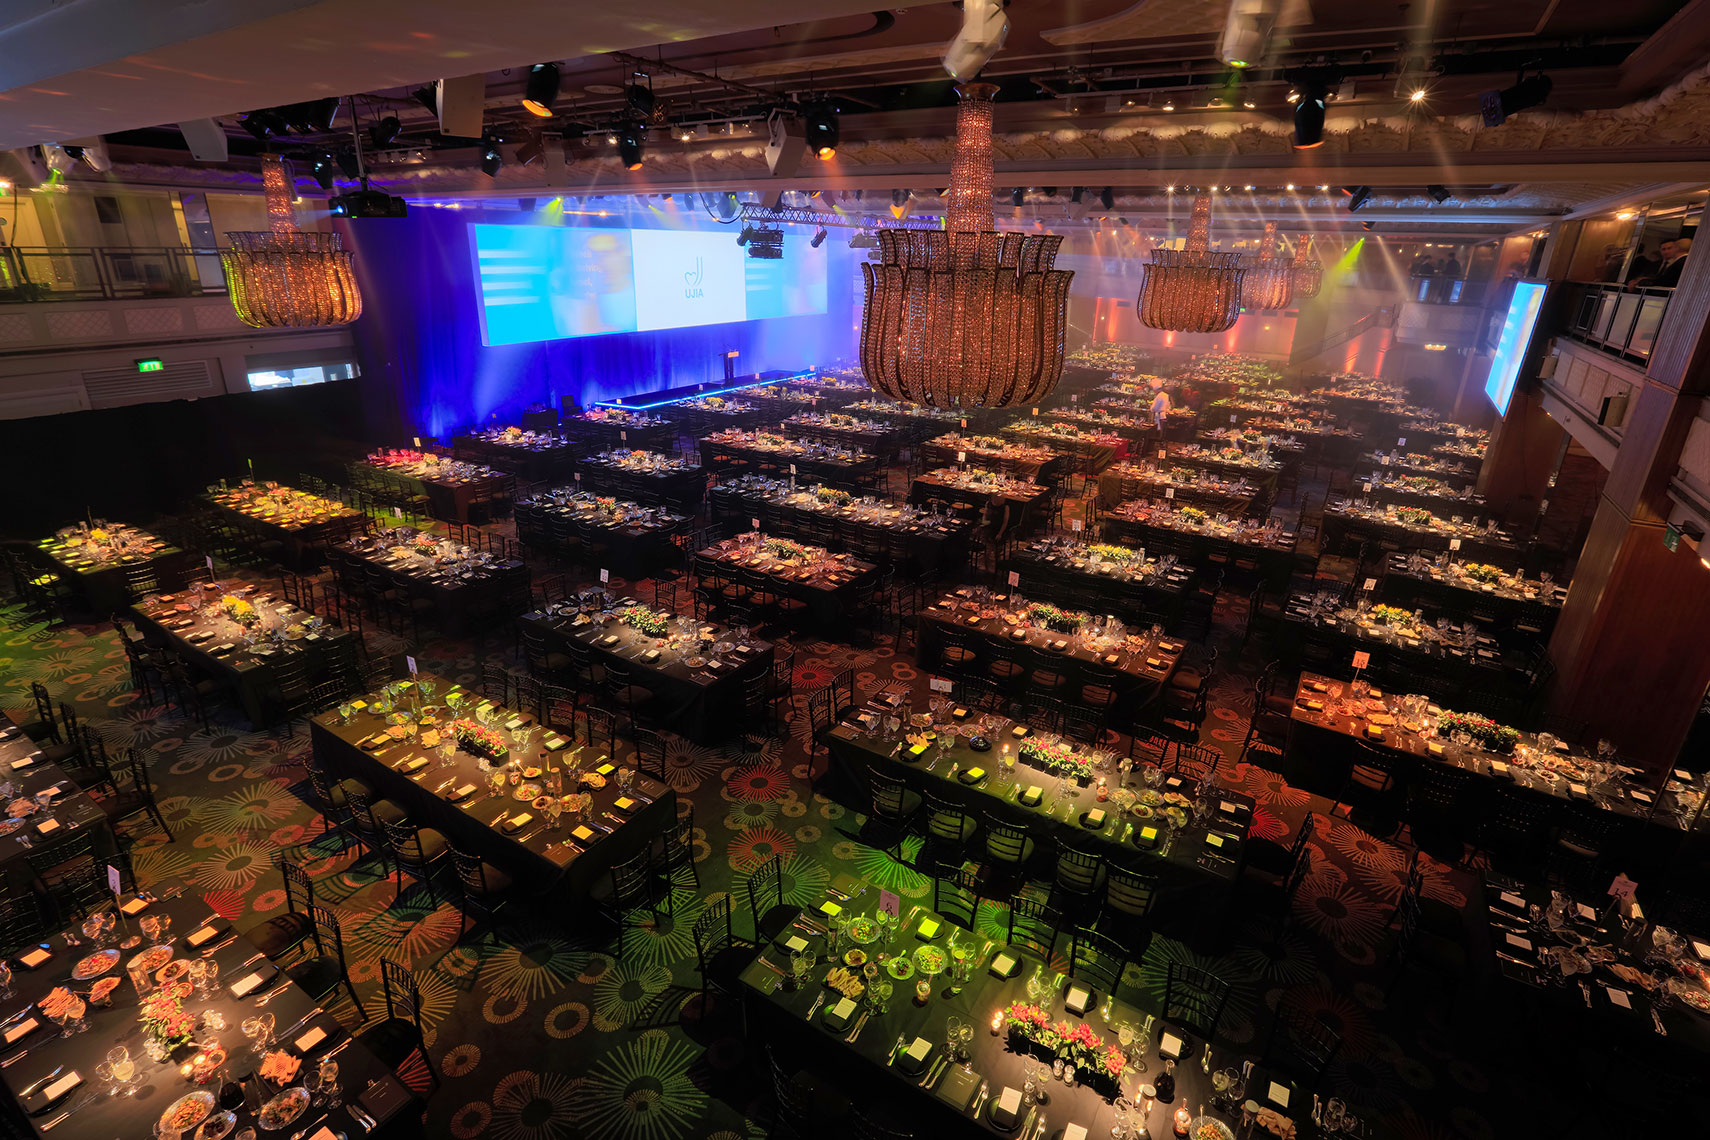 Interior ballroom set up for a corporate event in expensive London hotel.